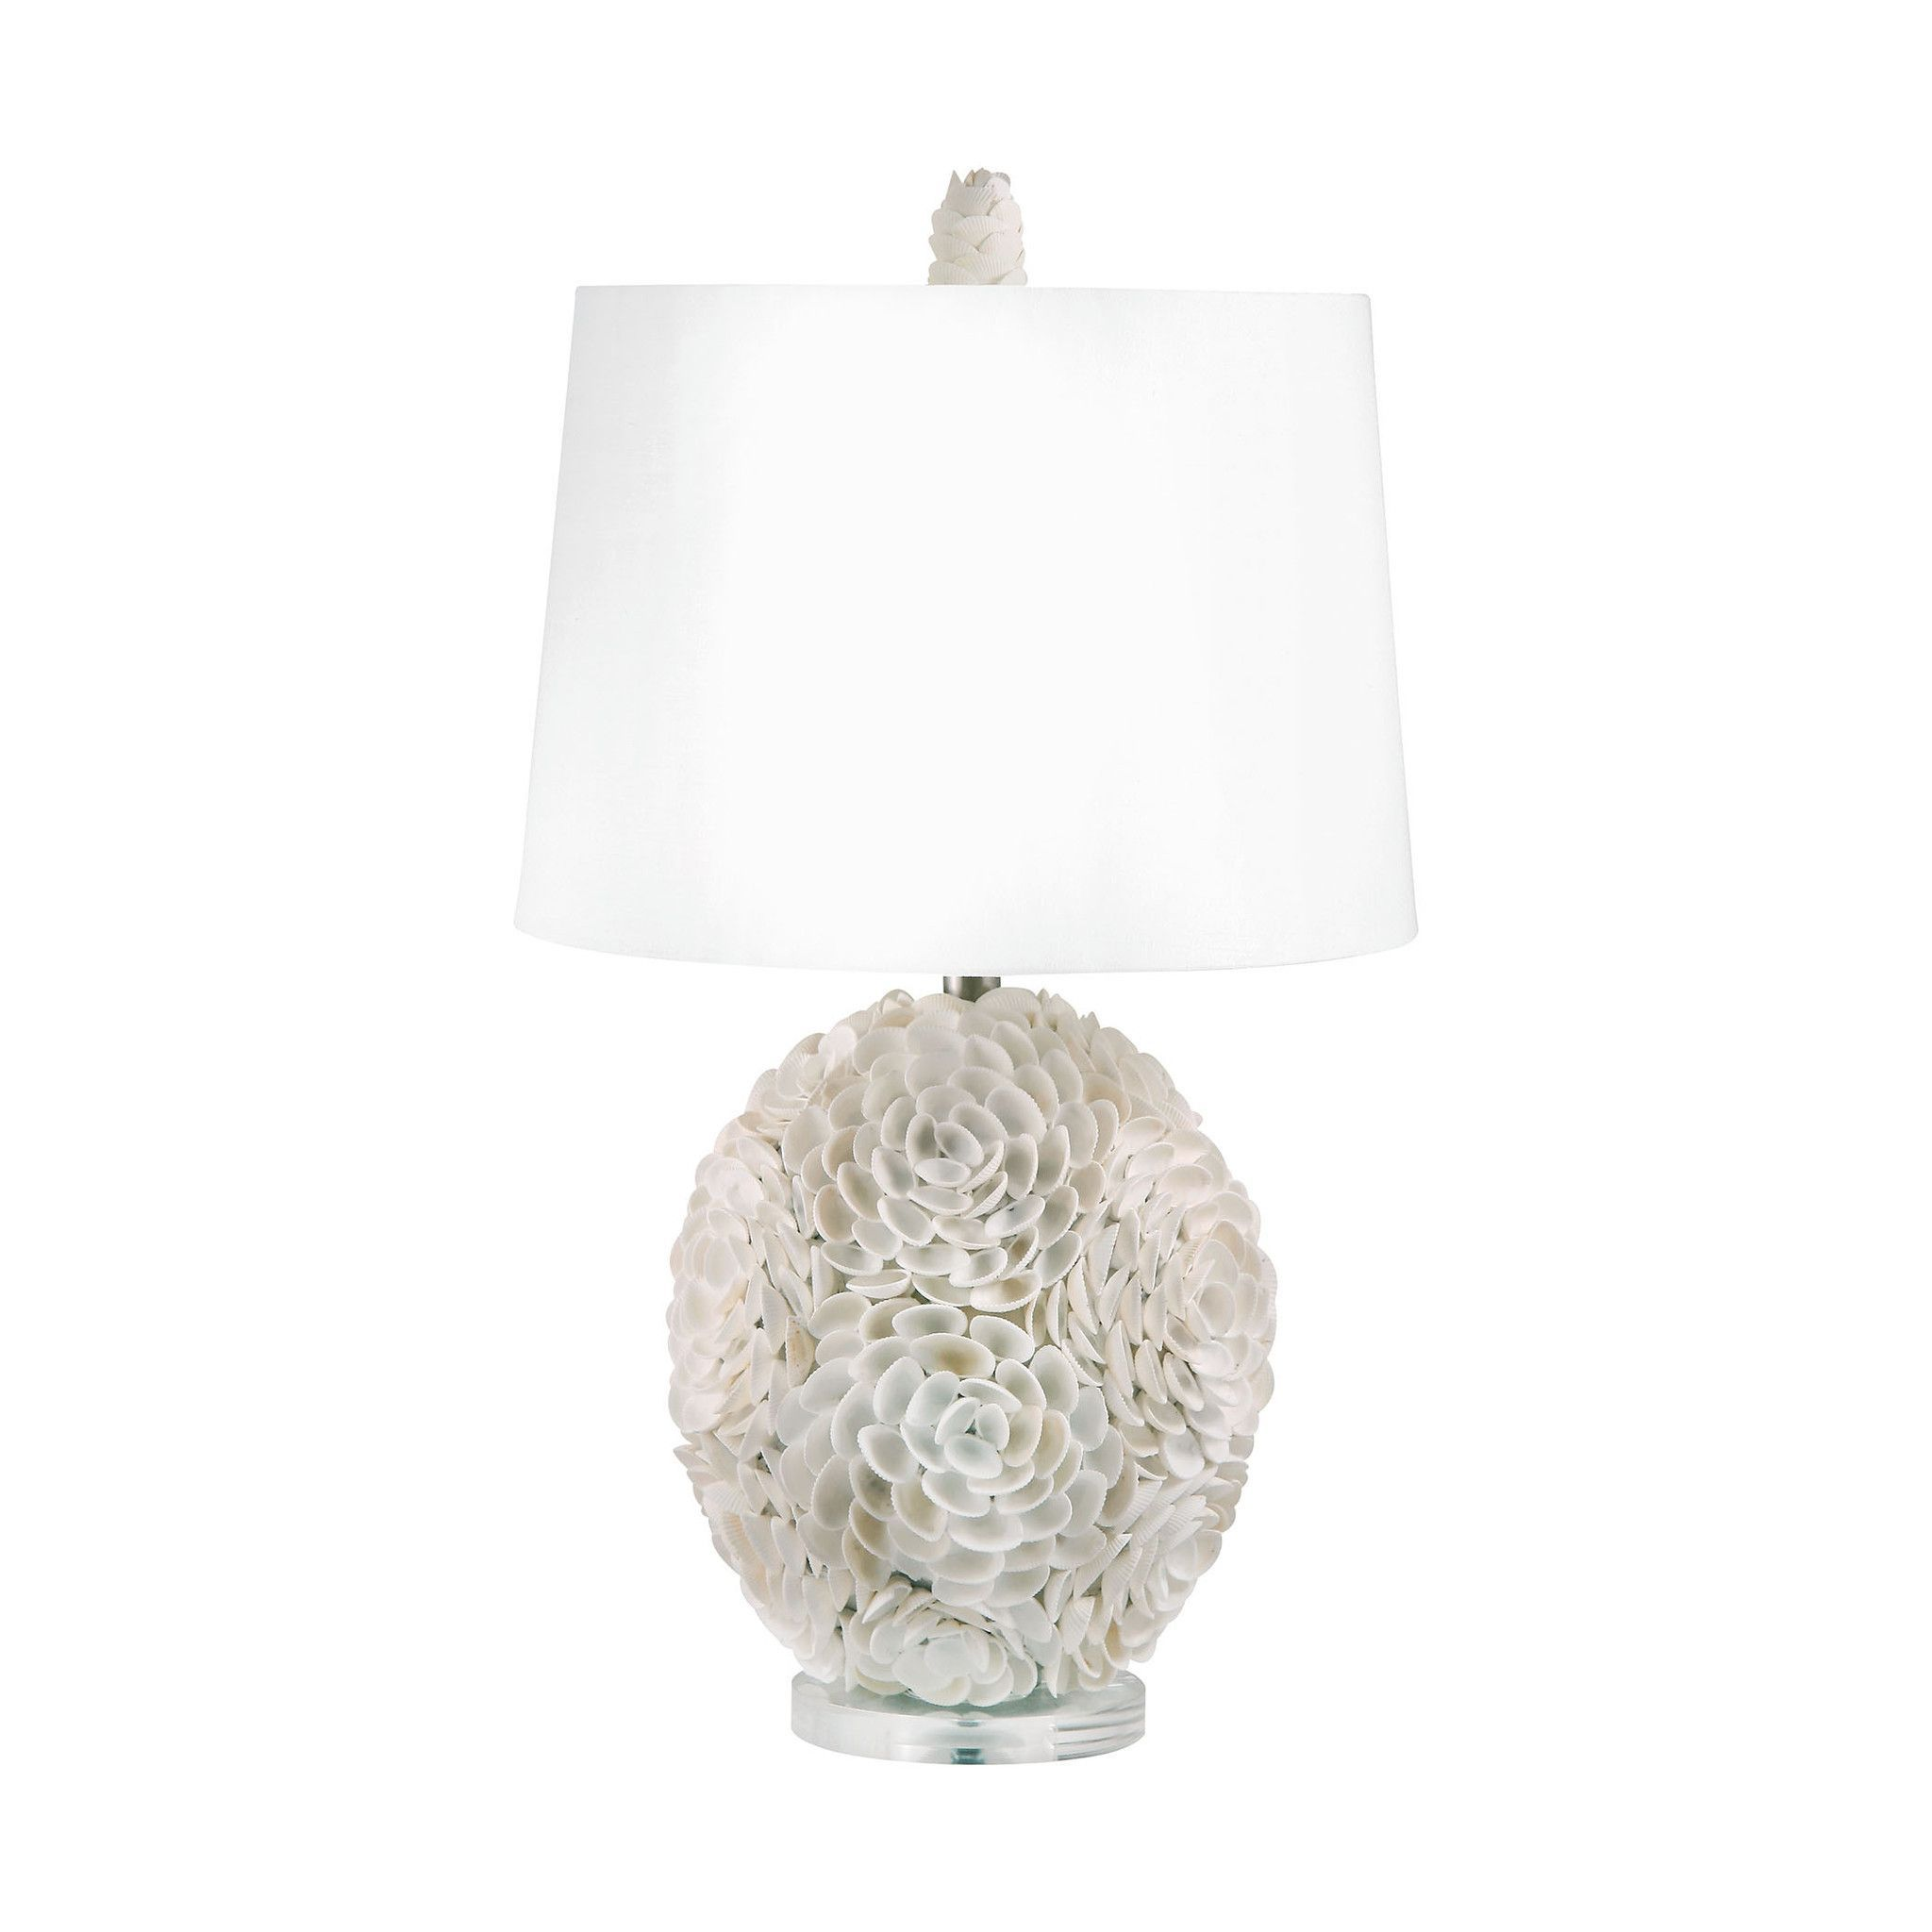 Lamp works hand applied natural shells table lamp 505 products lamp works shell table lamp delicate white shells create the floral motif of this lamp works shell table lamp a matching finial and white fabric drum aloadofball Images